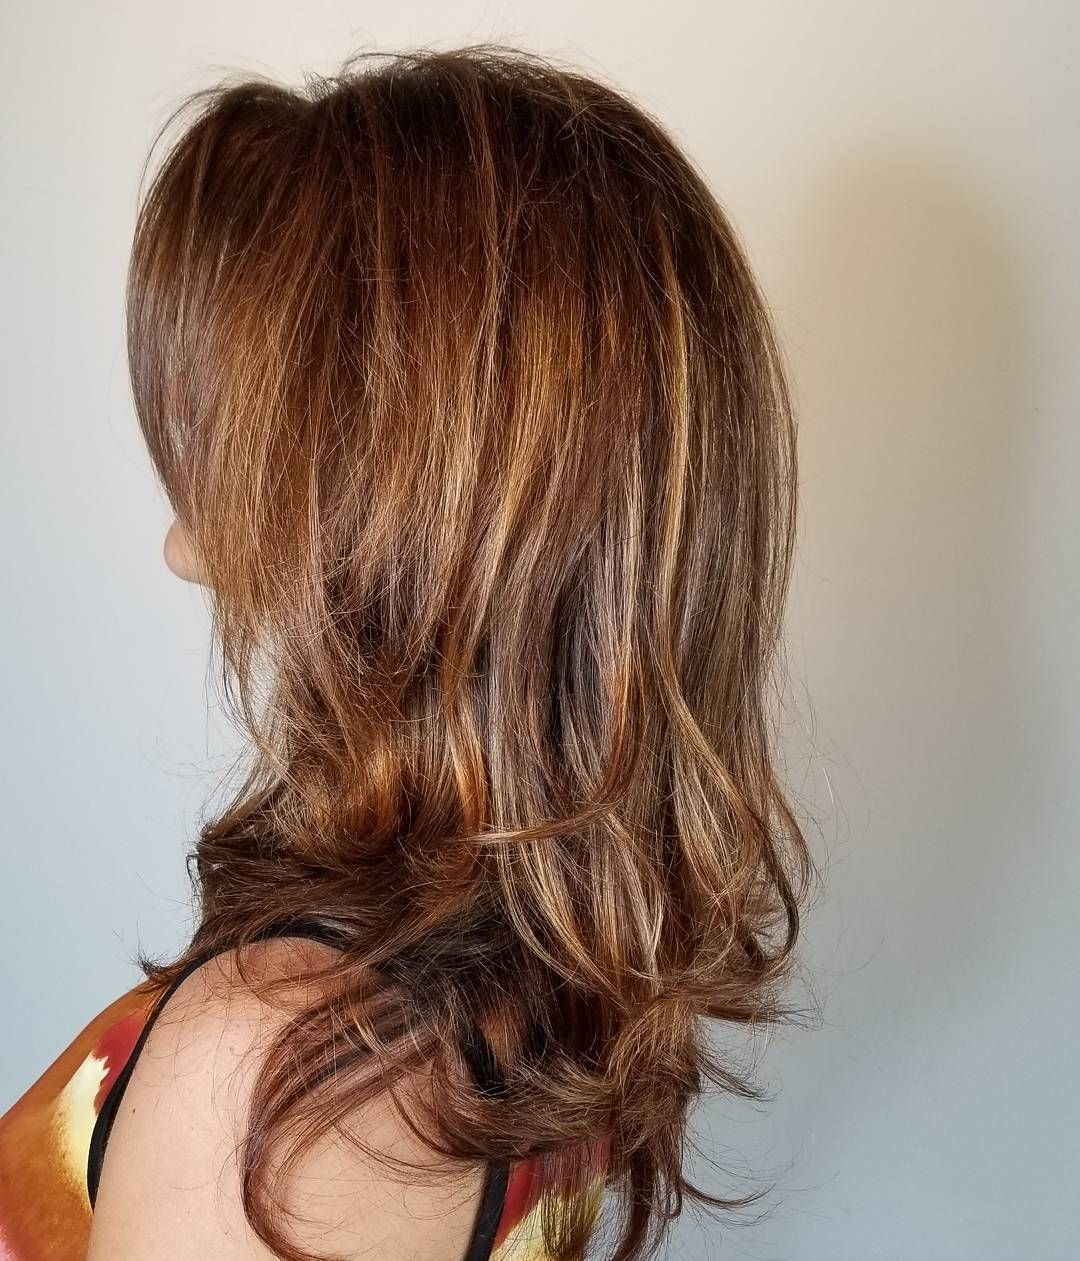 #behindthechair #wella #wellalife #hair #healthyhair #redken #charlottenc #clthair #btcpics #hairstylist #cosmetology #hattorihanzo #hanzonation #hairbrained #hairnerds #cosmetologist #hairtrends #nchair #ballantyne #blonde #highlights #balayage #milkshake #imallaboutdahair #elevatehair http://tipsrazzi.com/ipost/1523256756535814456/?code=BUjsfMTB-k4